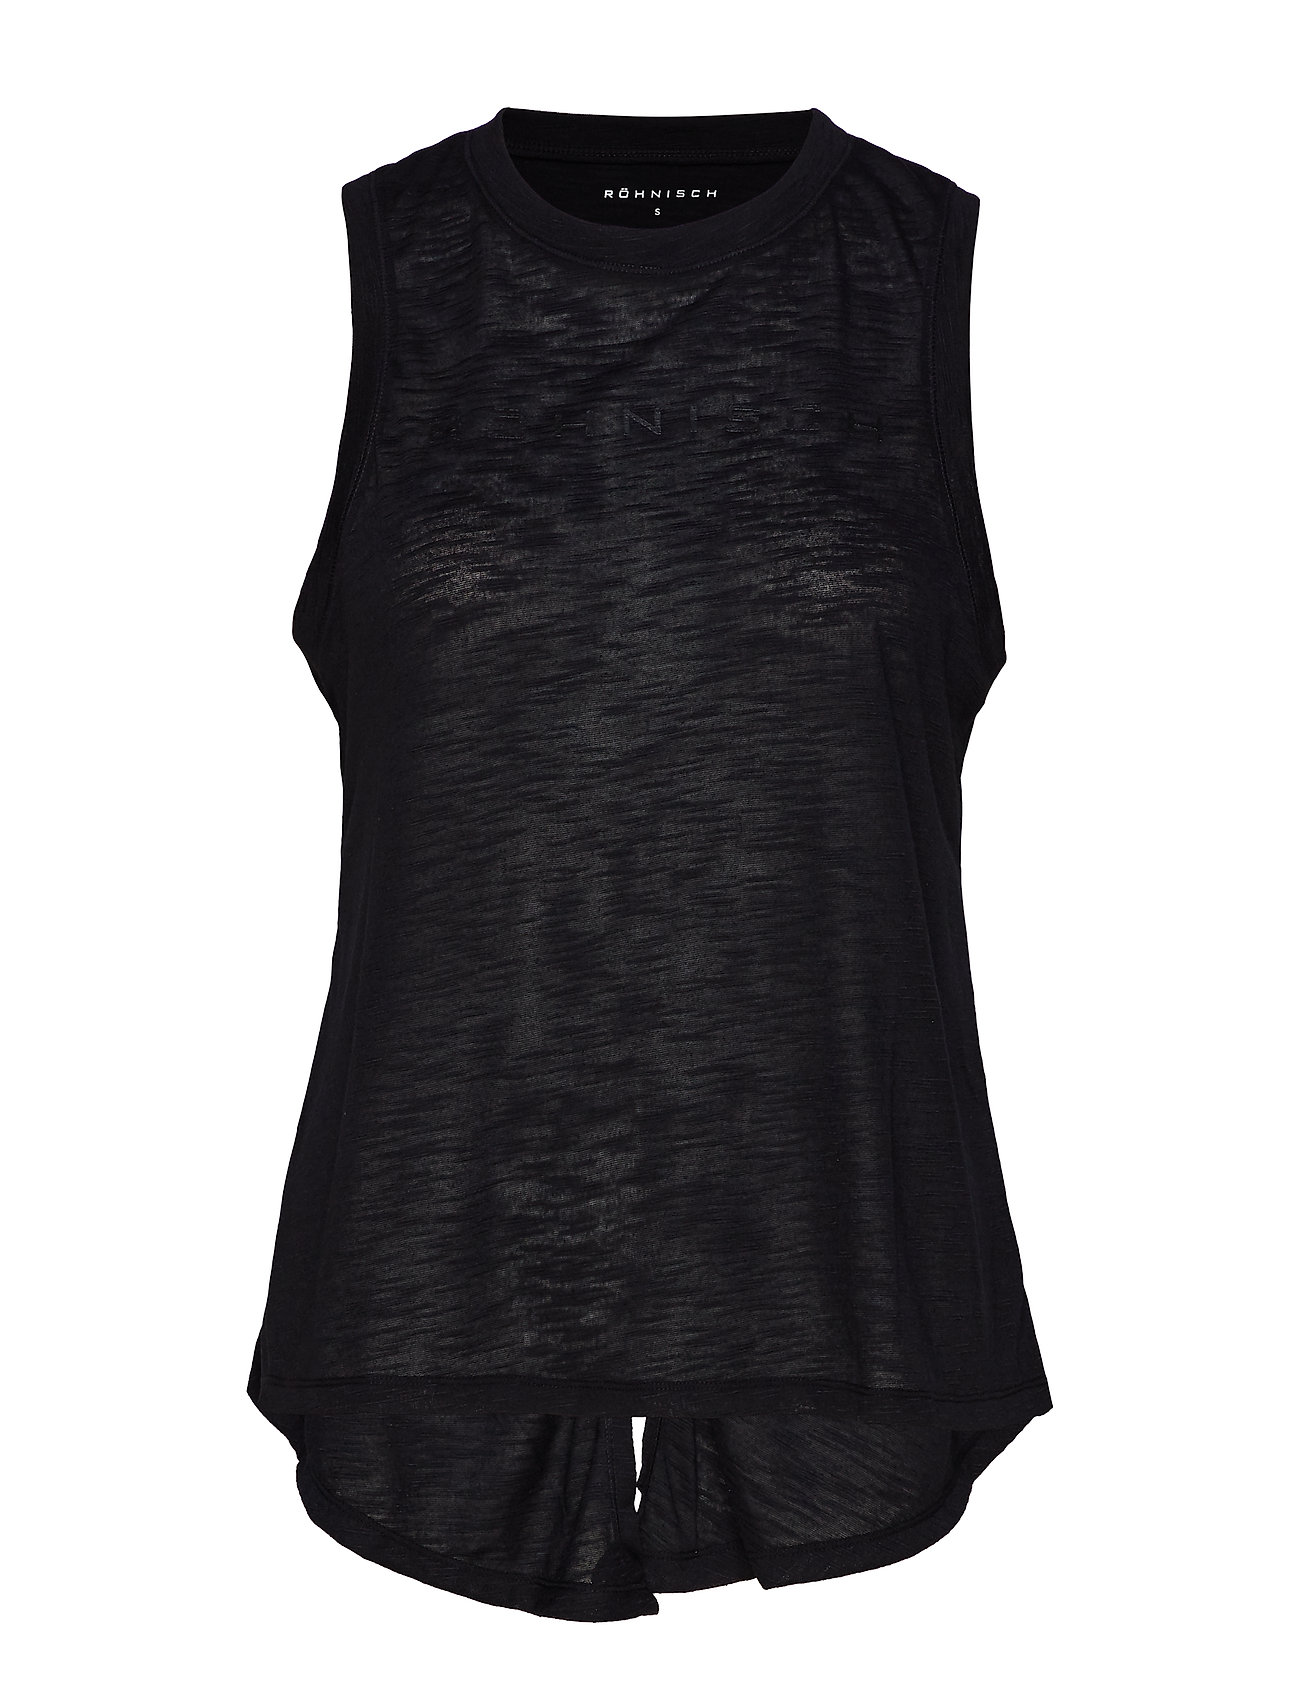 Image of Open Back Singlet Top Ærmeløs Top Sort Röhnisch (3213733339)